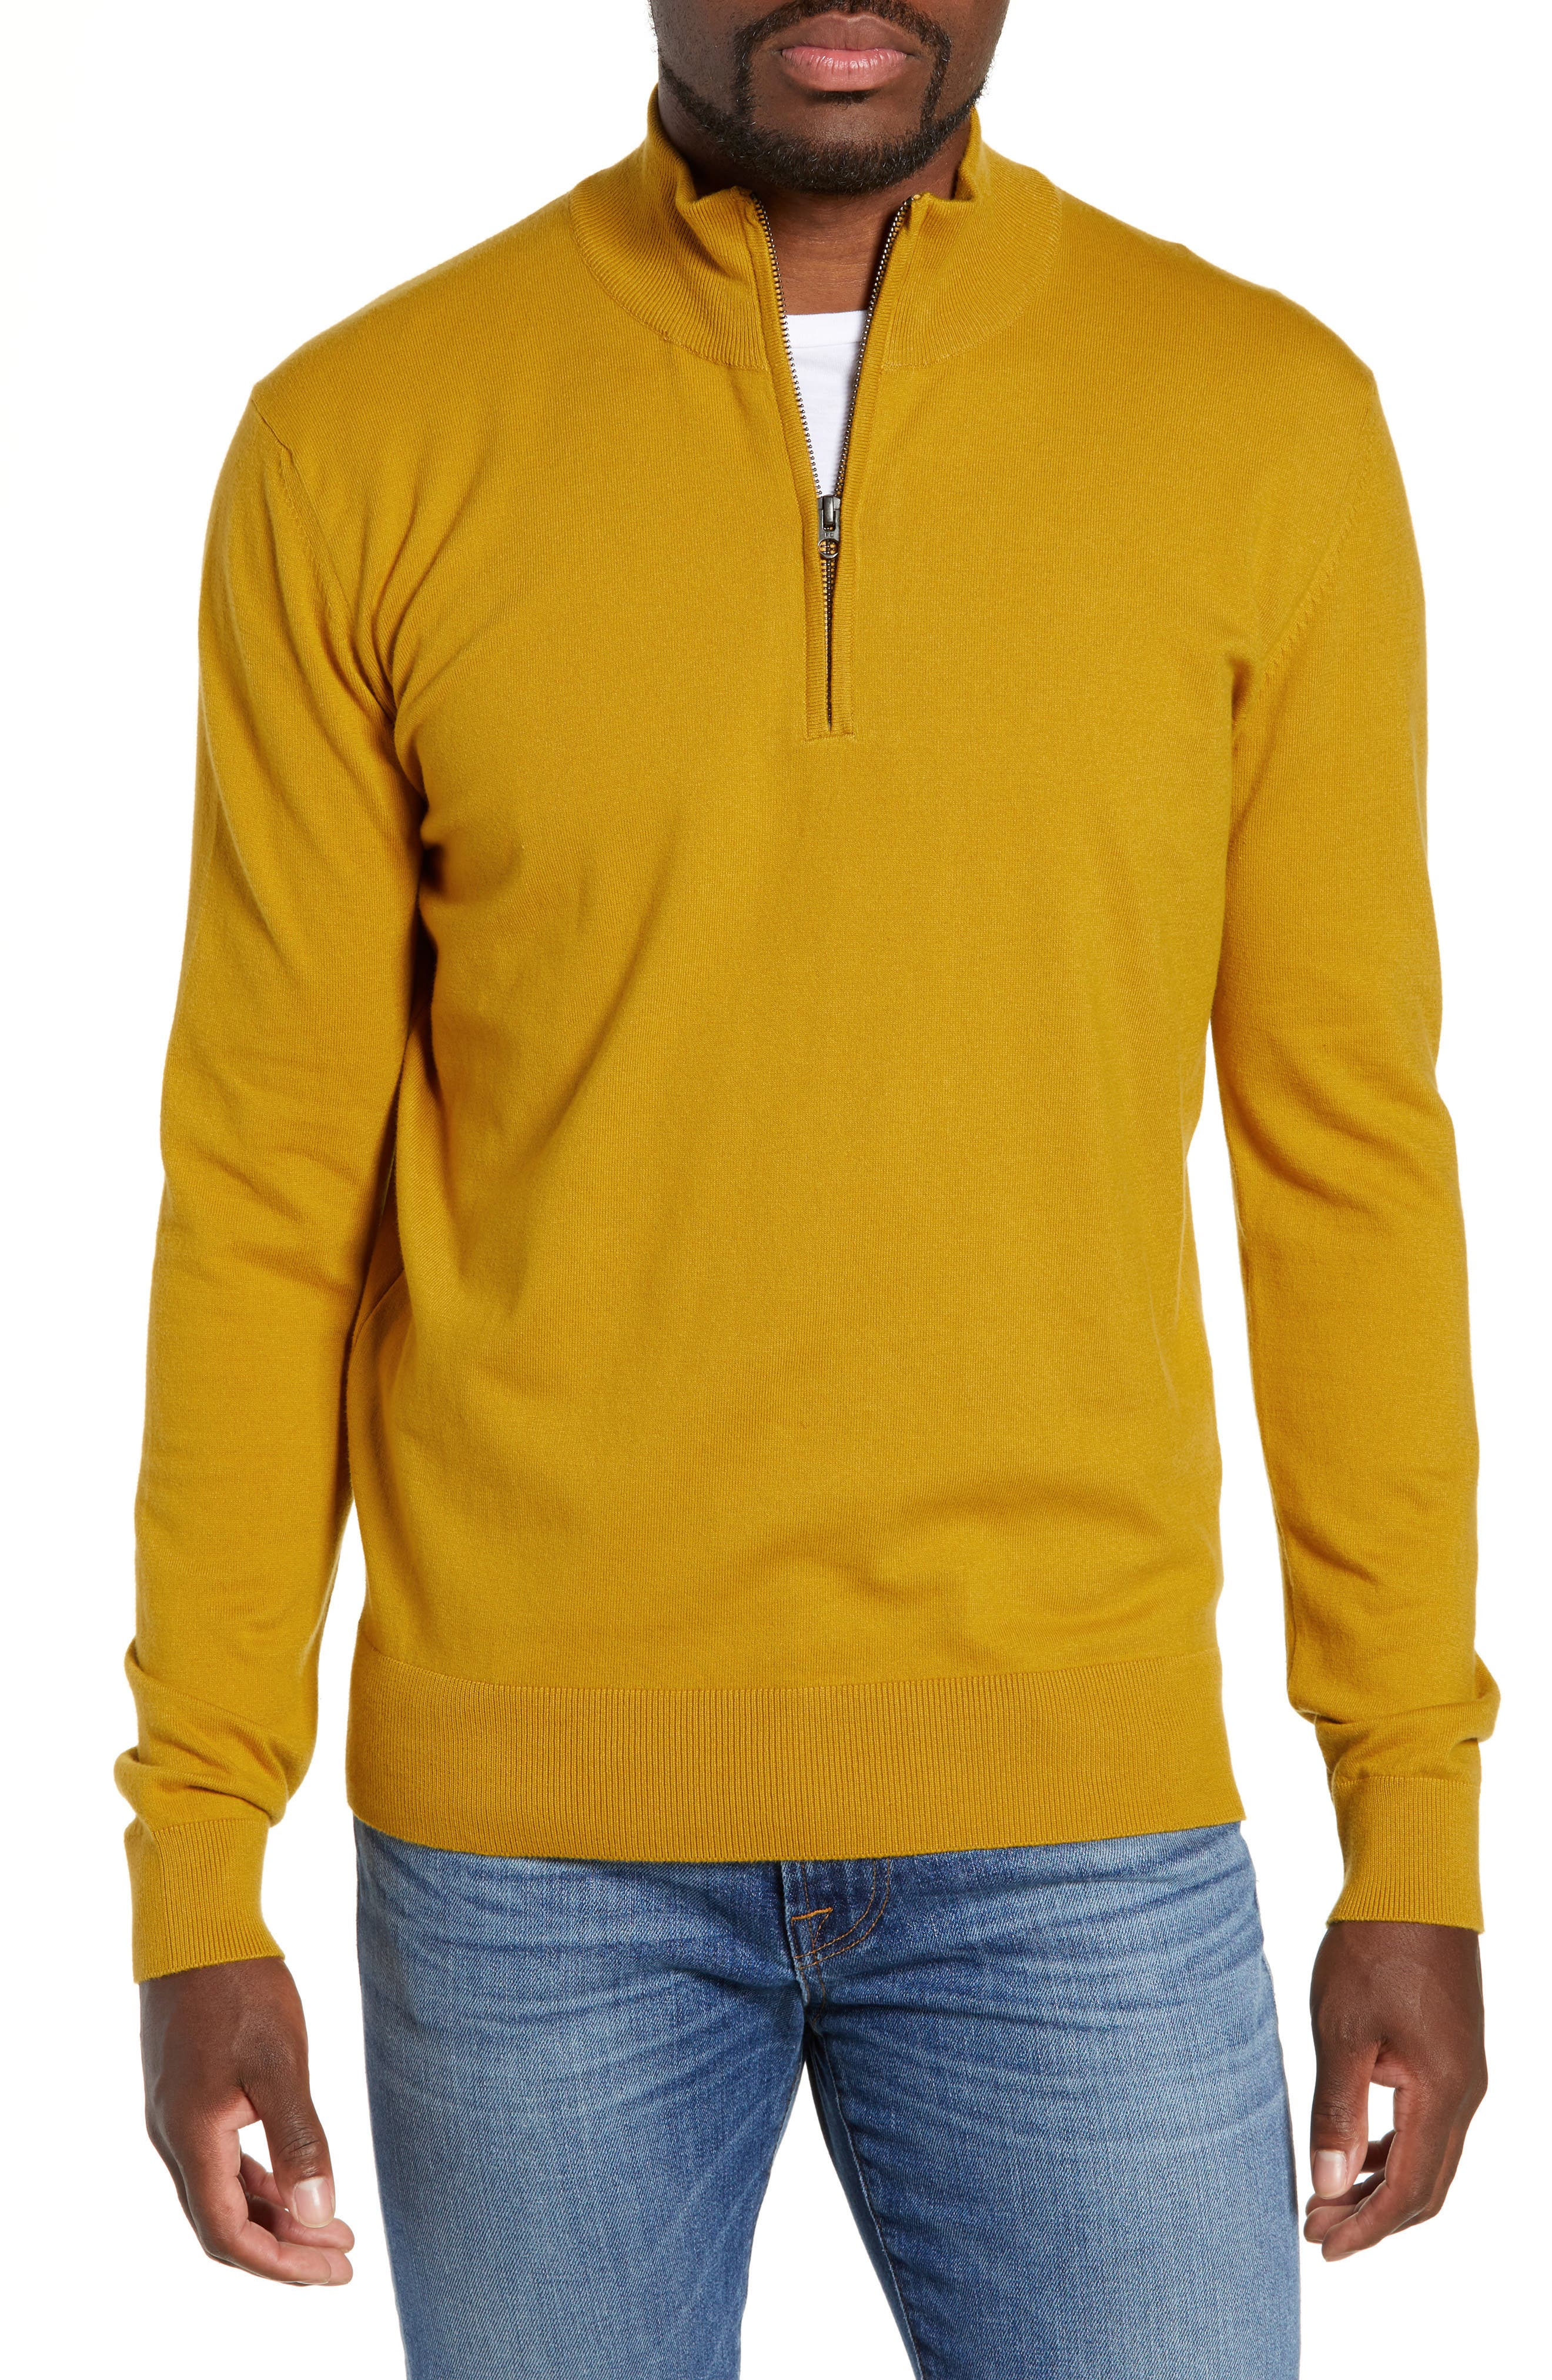 French Connection Stretch Cotton Quarter Zip Sweater, Yellow